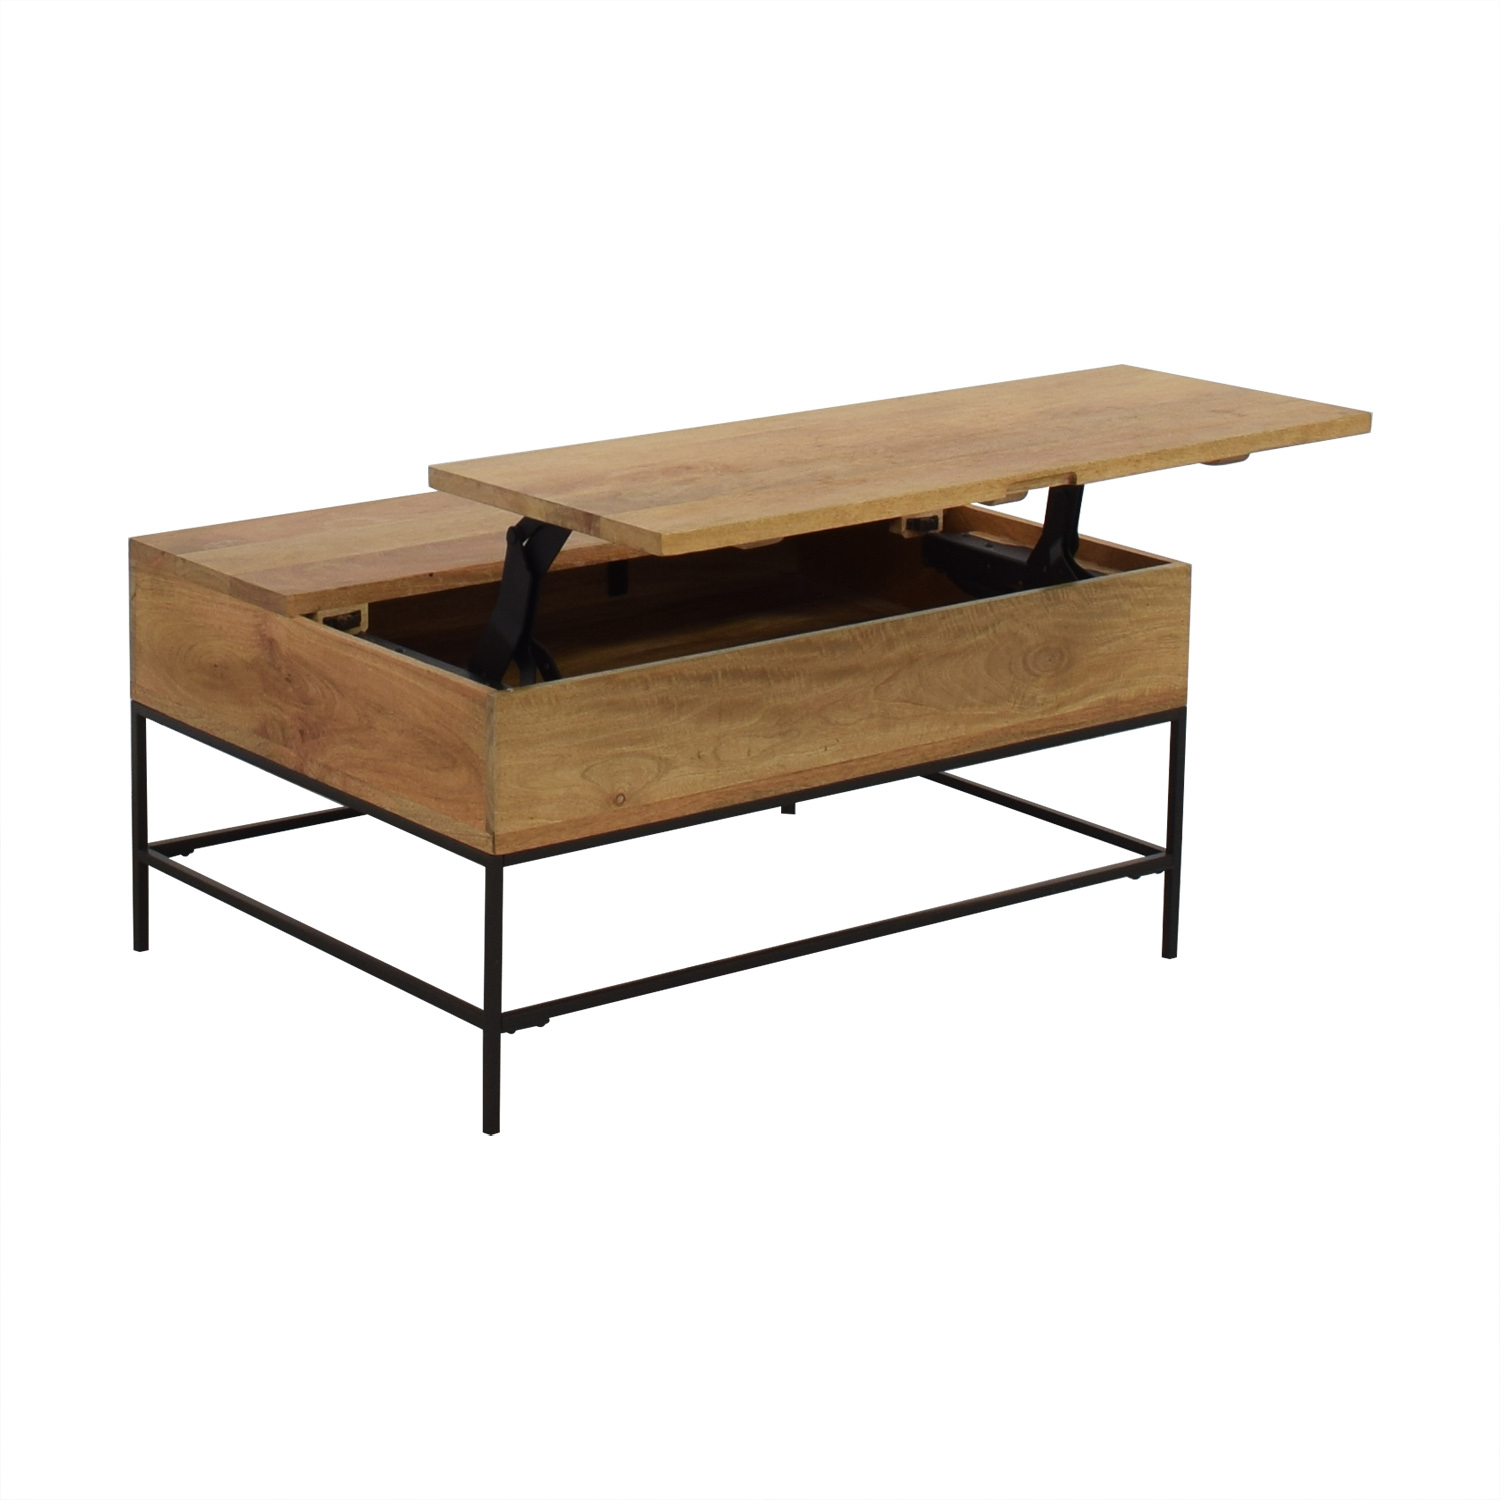 West Elm West Elm Industrial Storage Coffee Table second hand